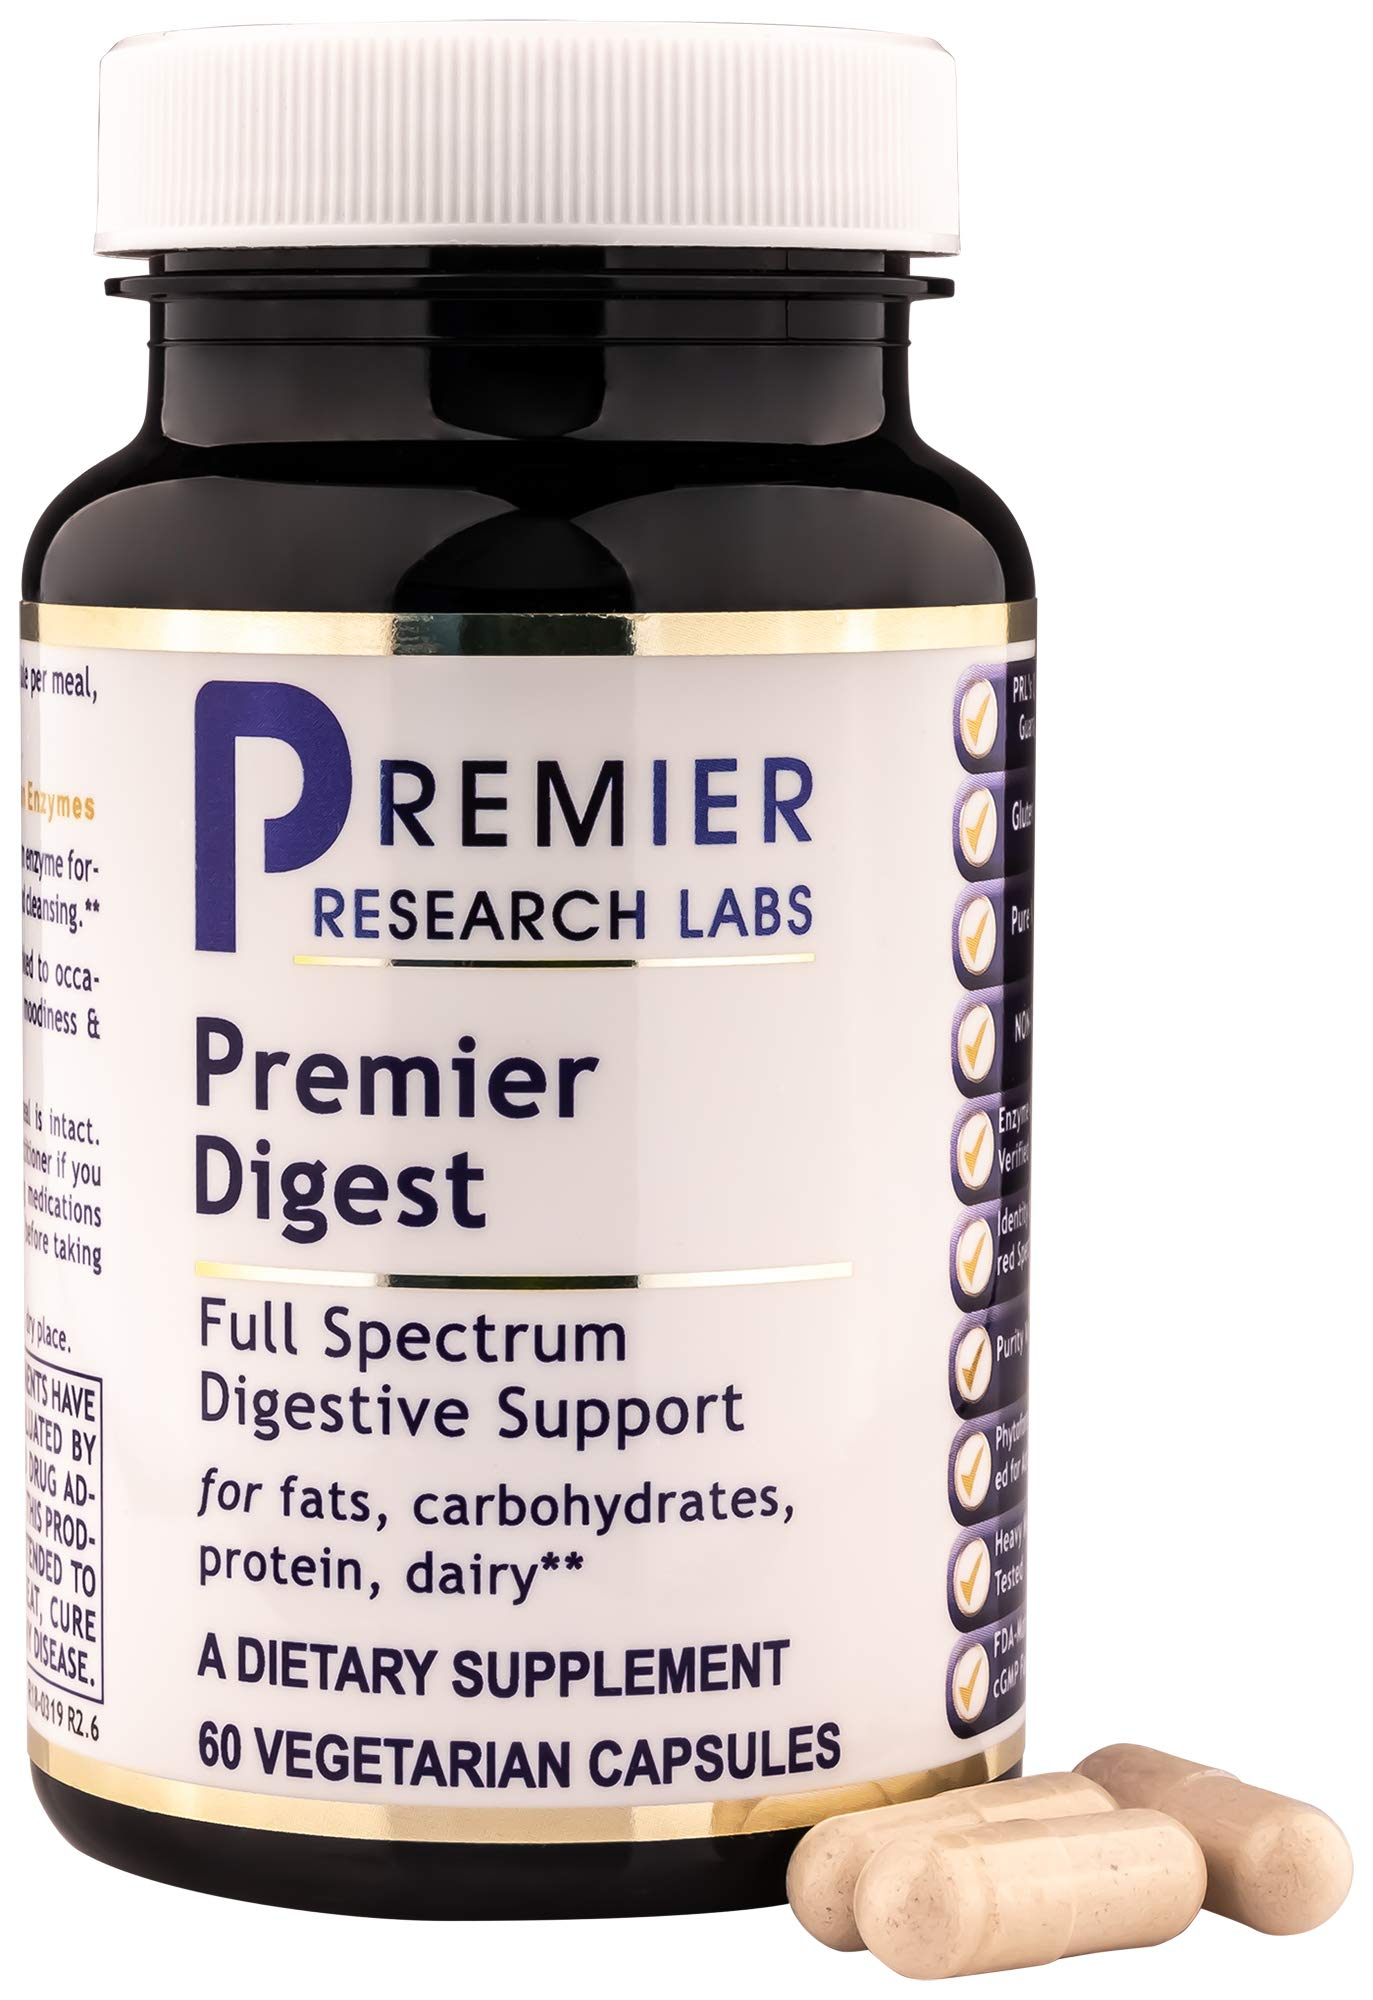 Premier Digest, 60 Capsules, Vegan Product - Vegetarian Source Enzymes, Full Spectrum Digestive Support for Fats, Carbohydrates, Proteins and Dairy